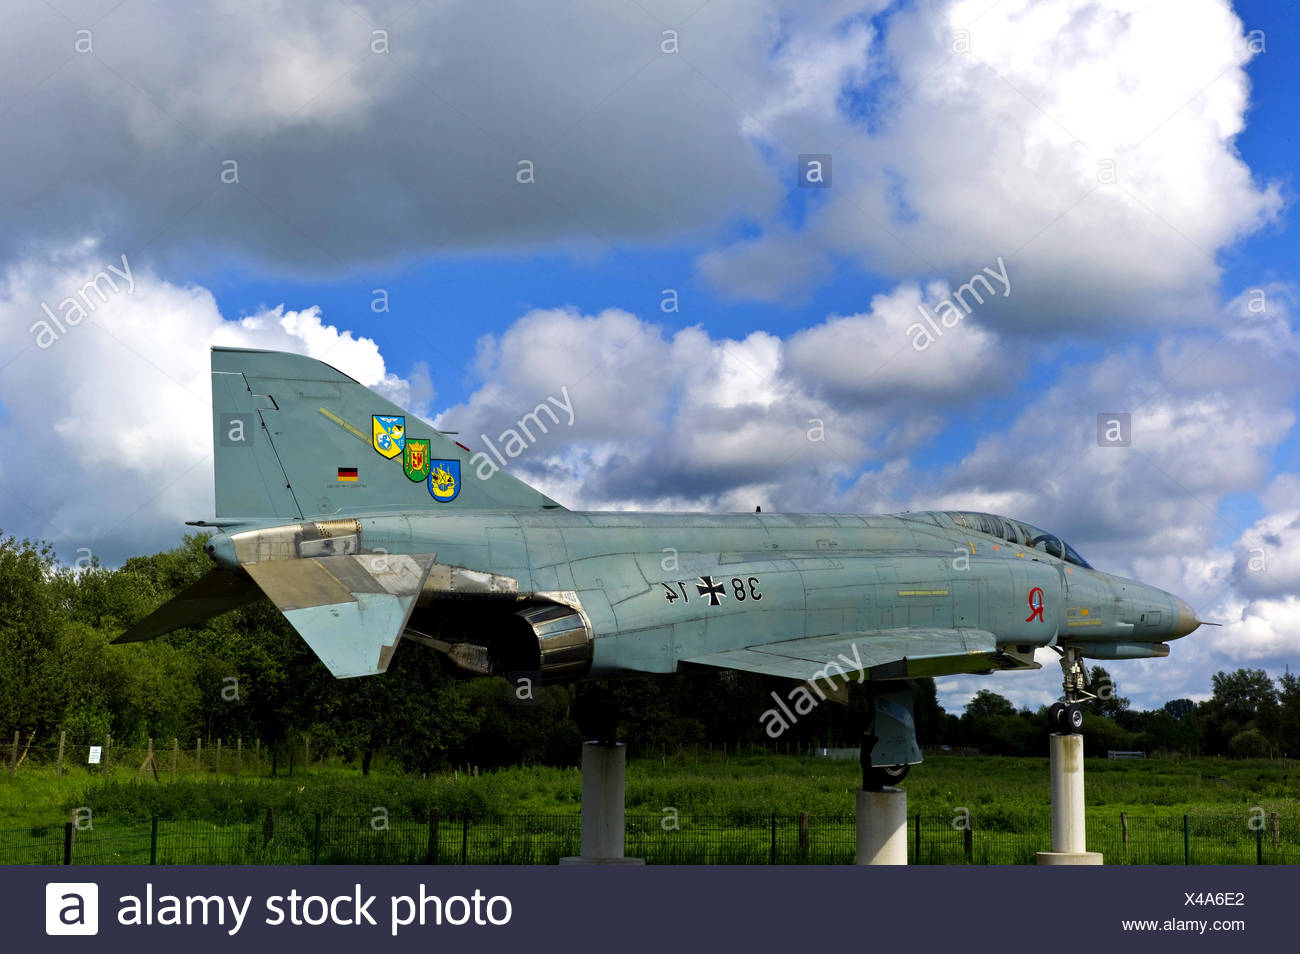 Phantom fighter on air base, Germany, Lower Saxony, Wittmund - Stock Image